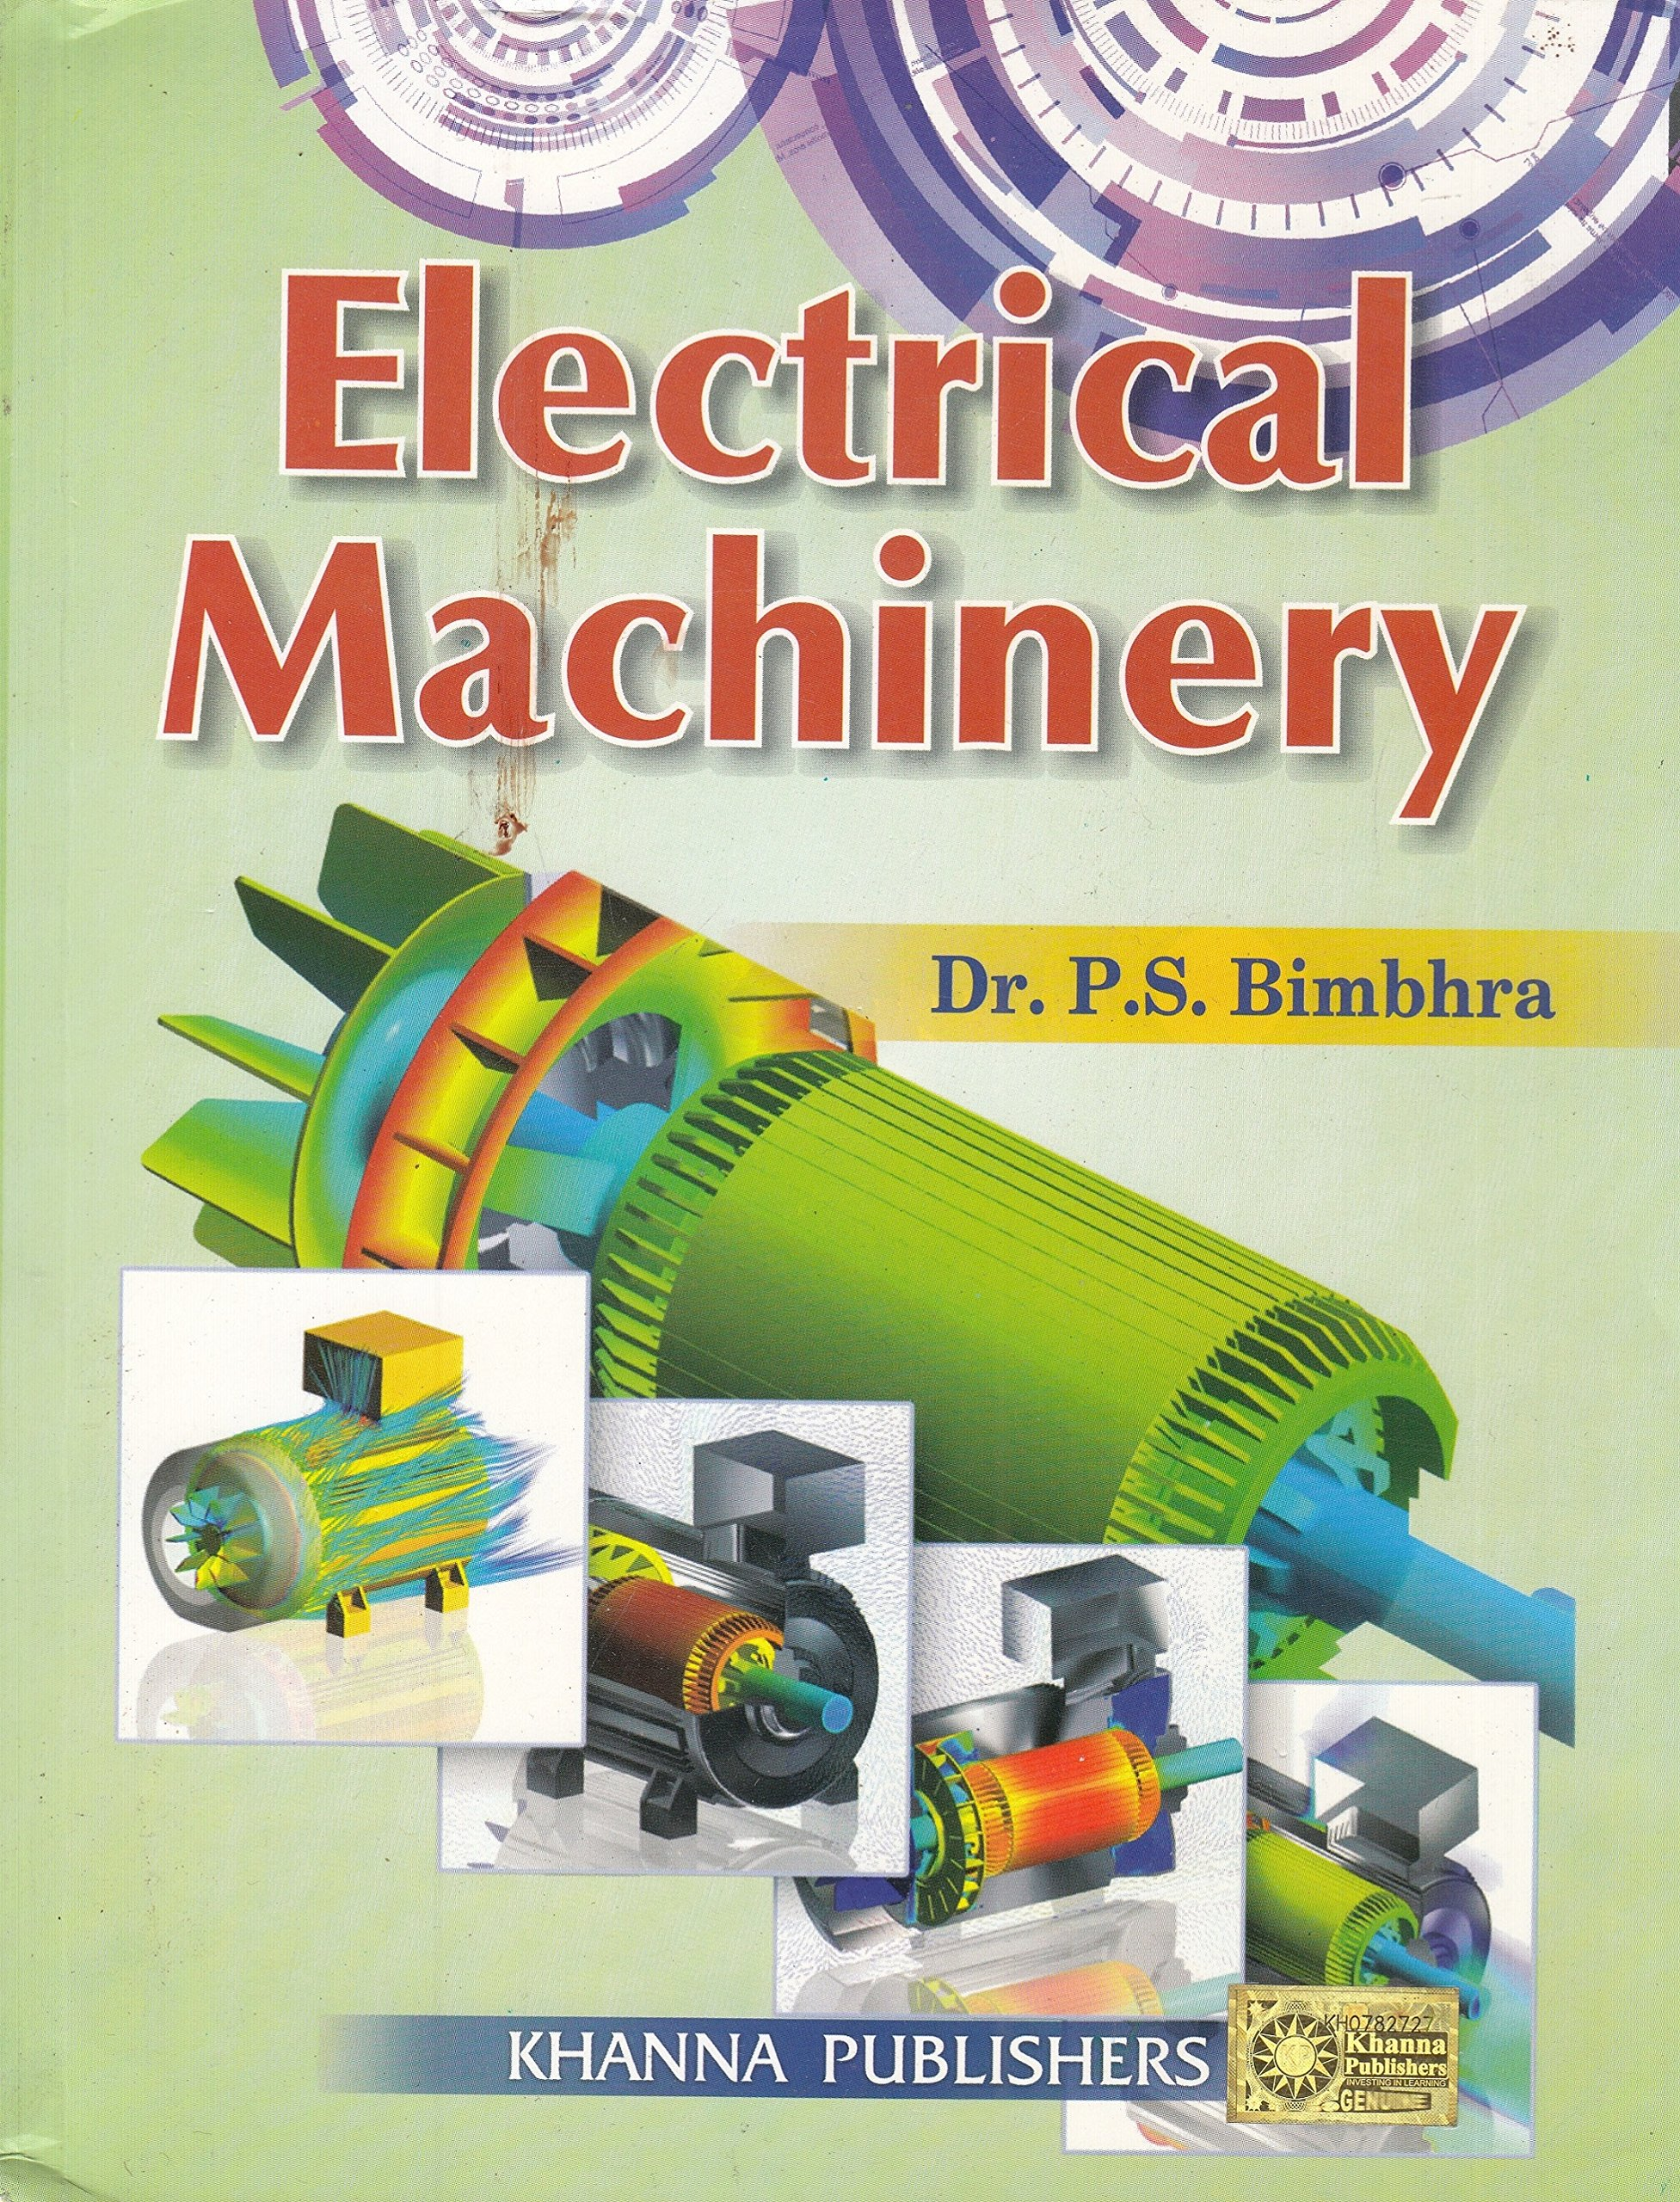 Electrical Electronic Engineering Books Buy On Circuit Analysis And Design Neamen Download Machinery